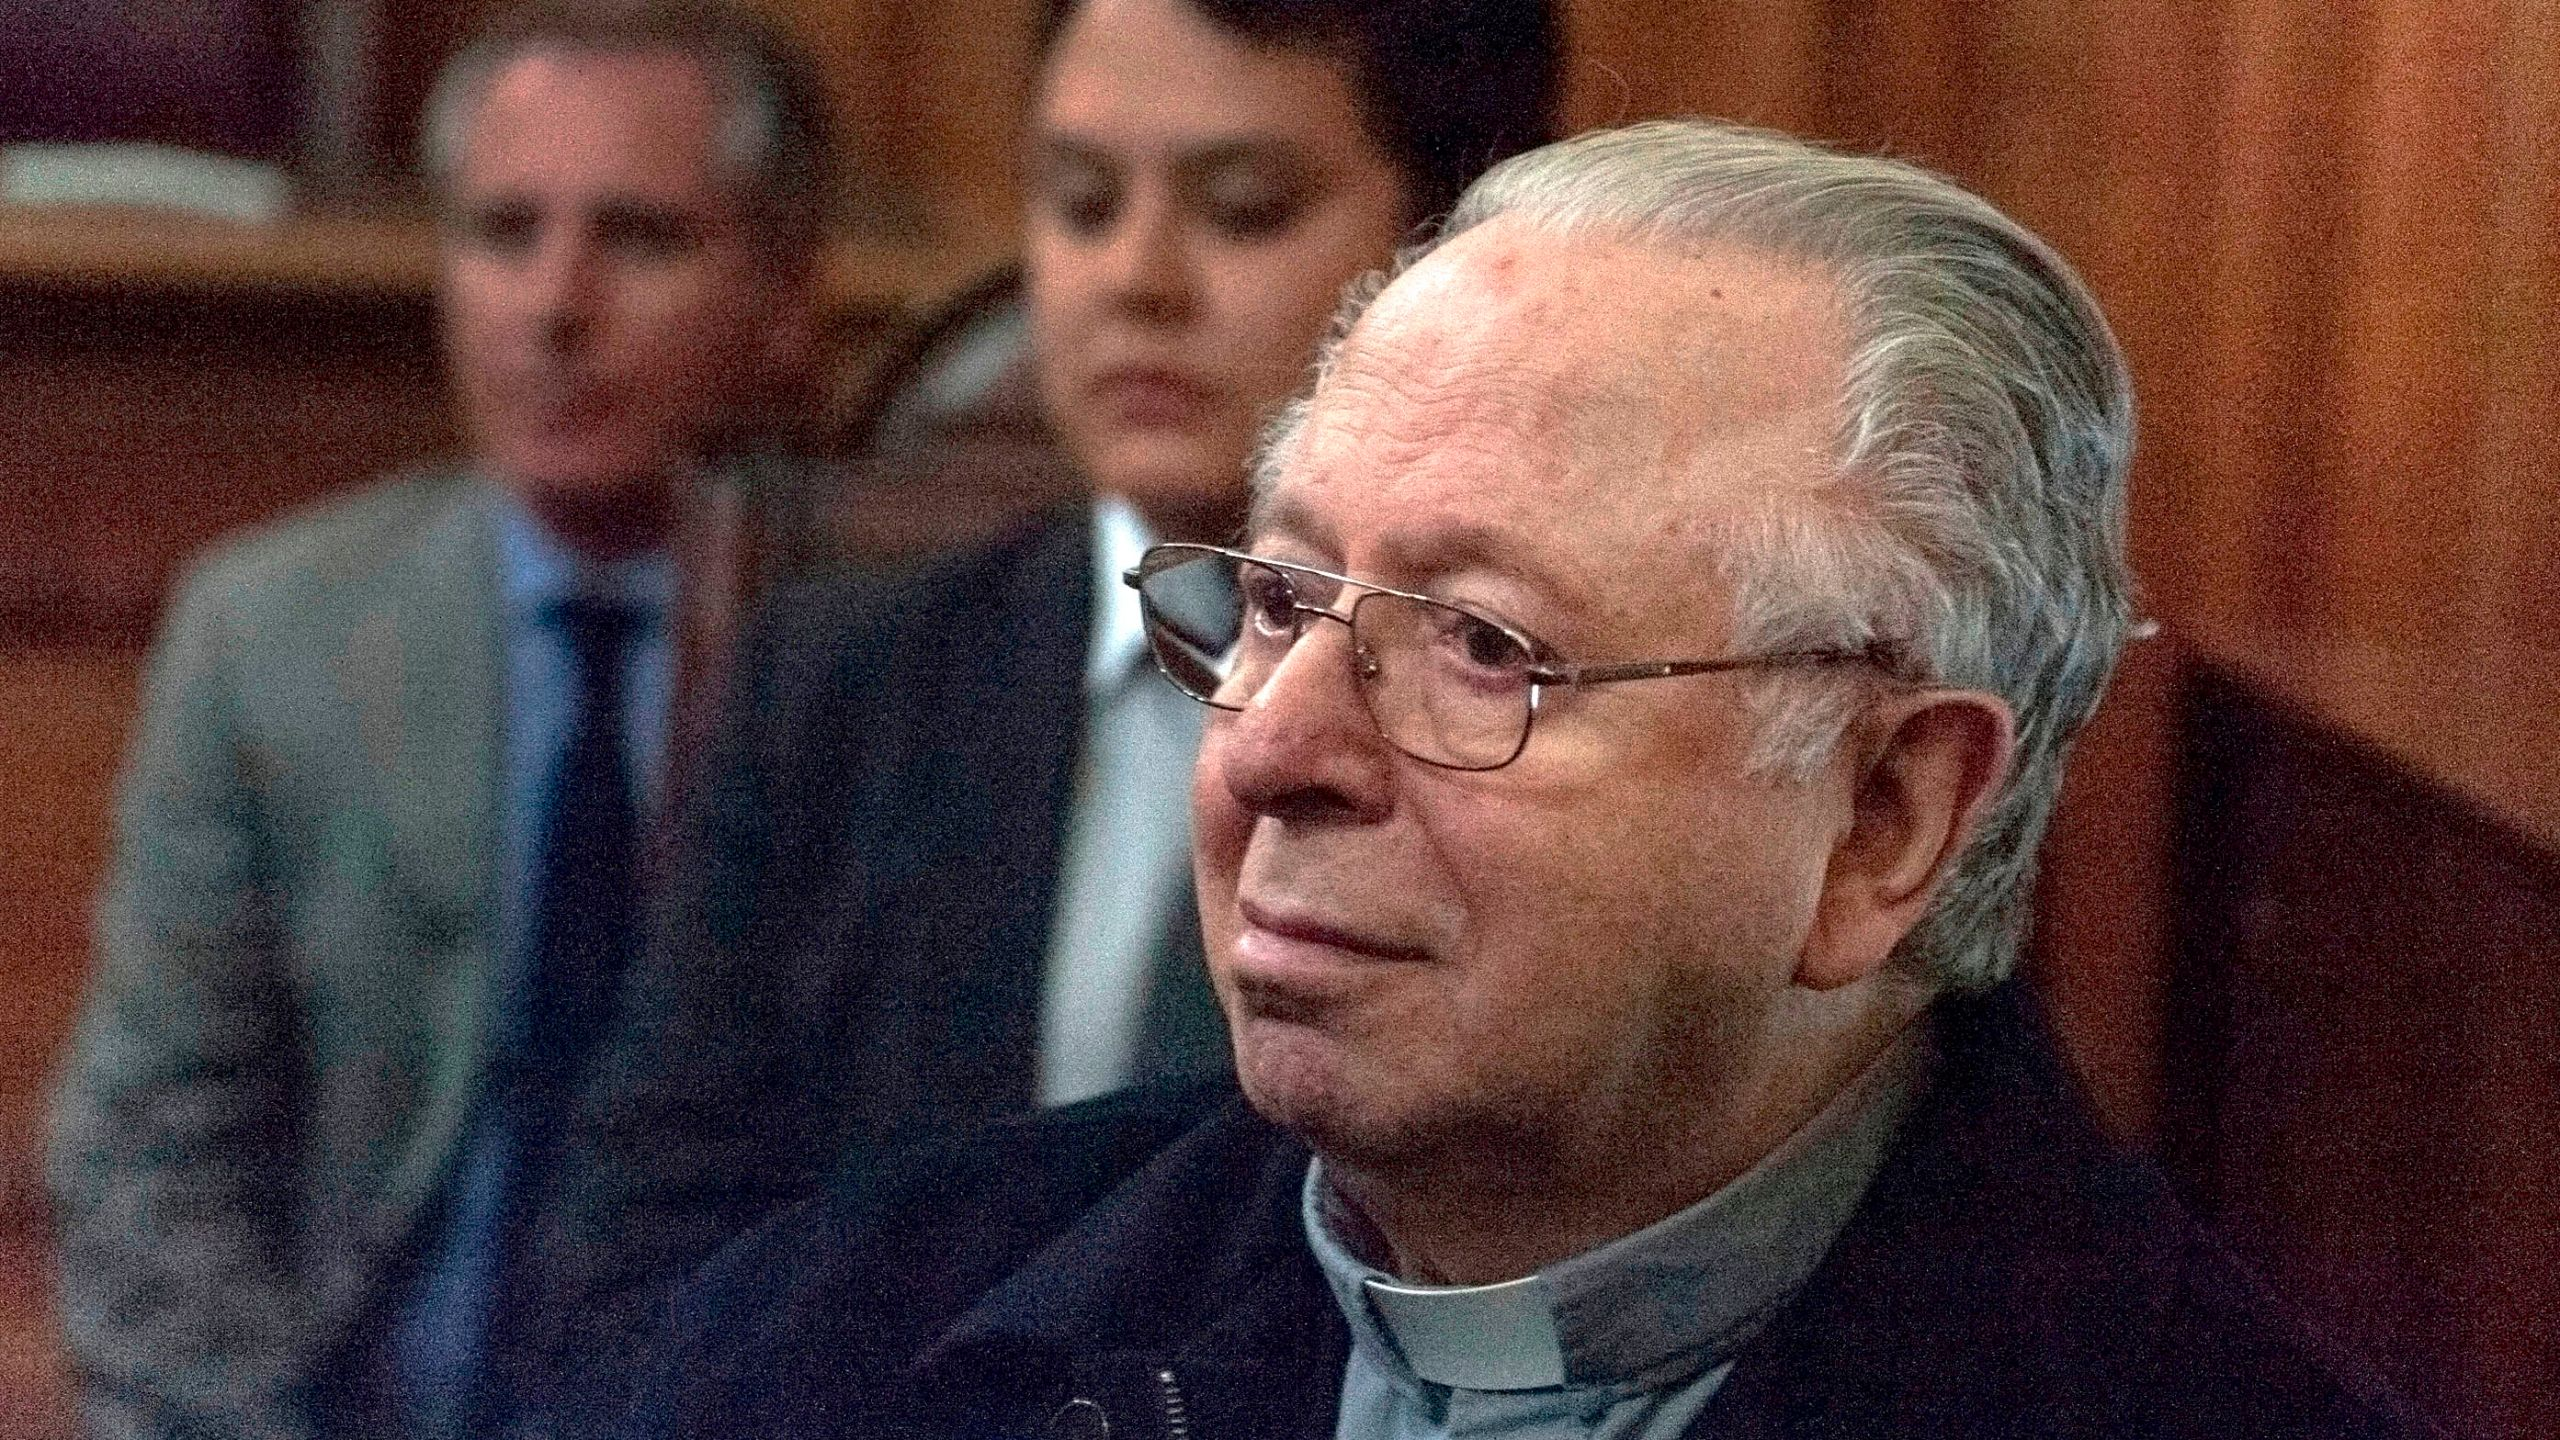 Chilean priest Fernando Karadima appears in court of Santiago on November 11 2015 to testify in a civil lawsuit against the Archdiocese of Santiago for allegedly sexual abuse cover up. (Credit: VLADIMIR RODAS/AFP/Getty Images)